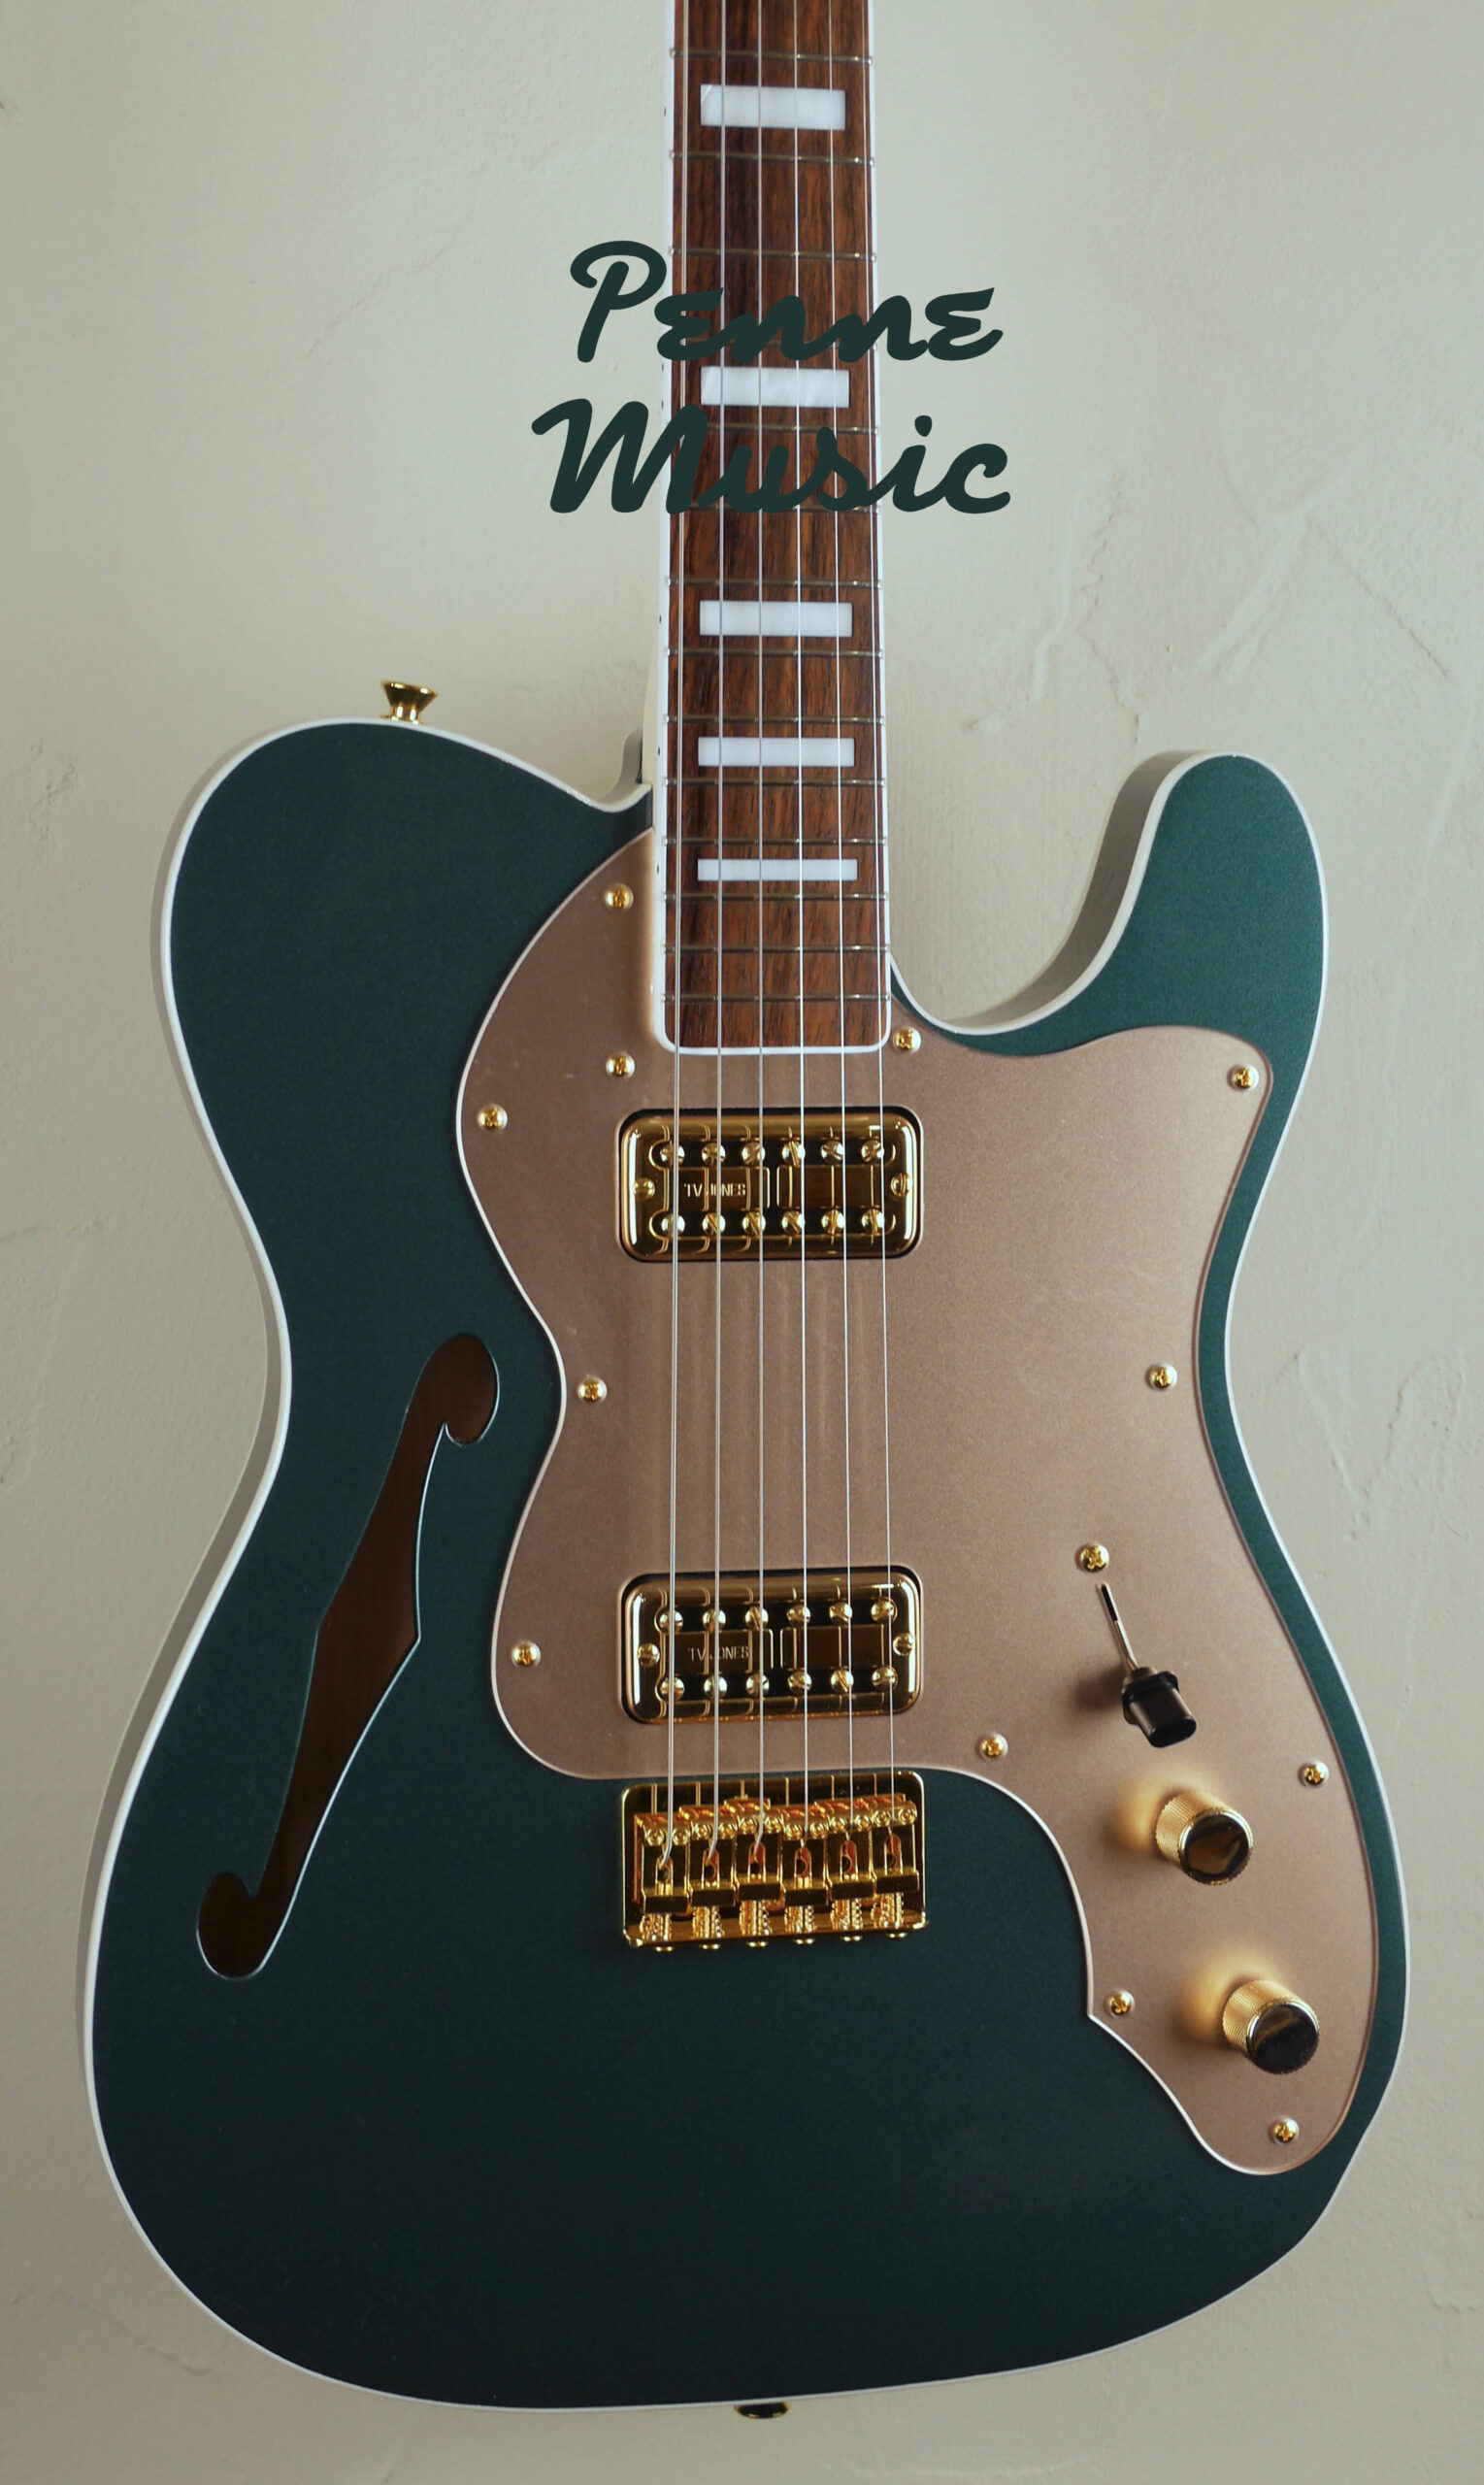 Fender Super Deluxe Thinline Telecaster Limited Edition Sherwood Green Metallic 3